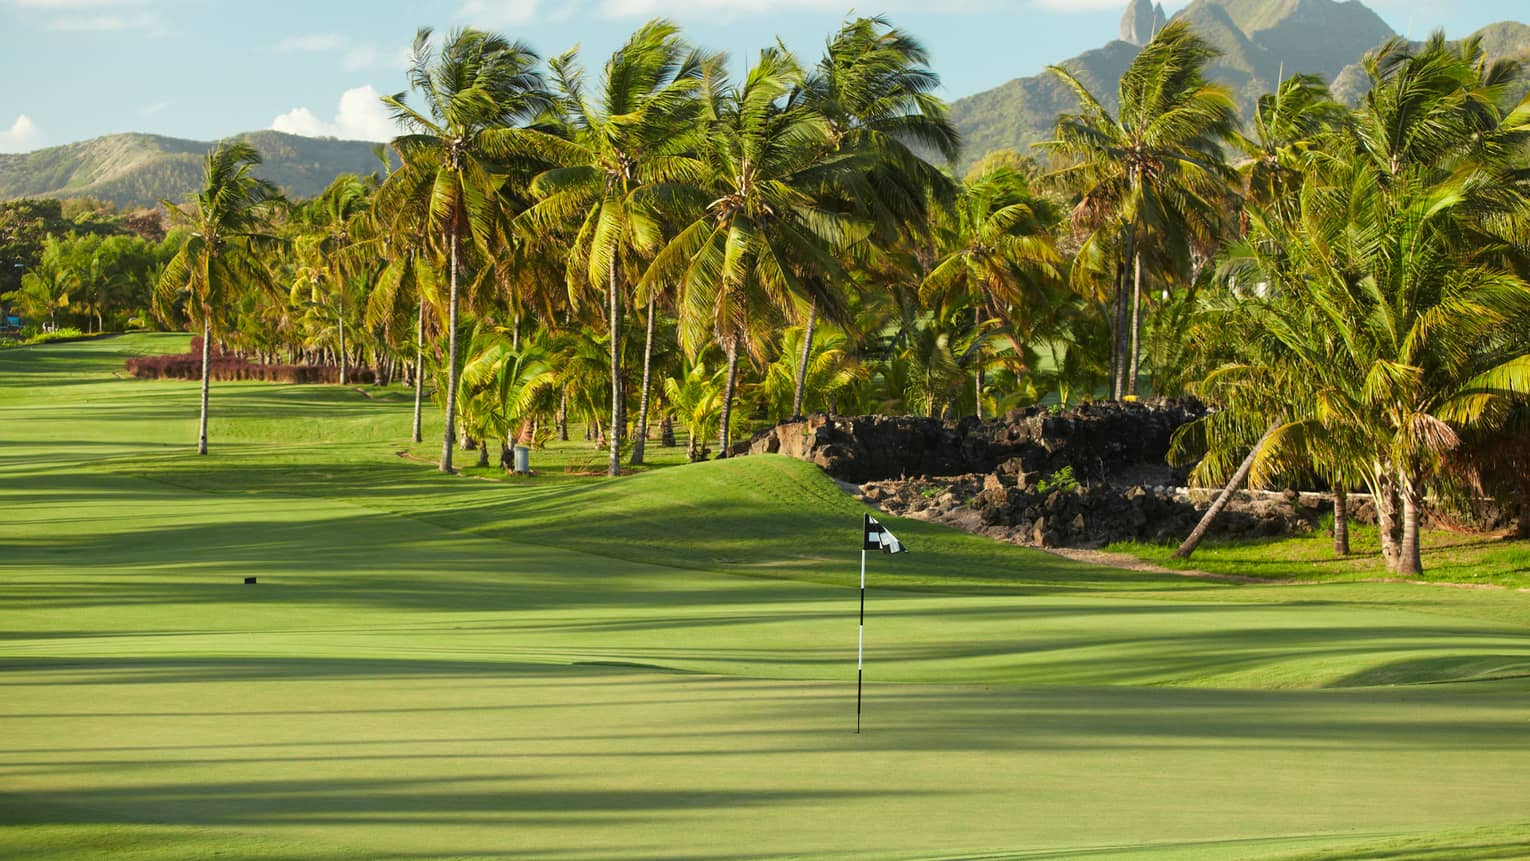 Flags on 10th hole of golf course with tropical palm trees lining green